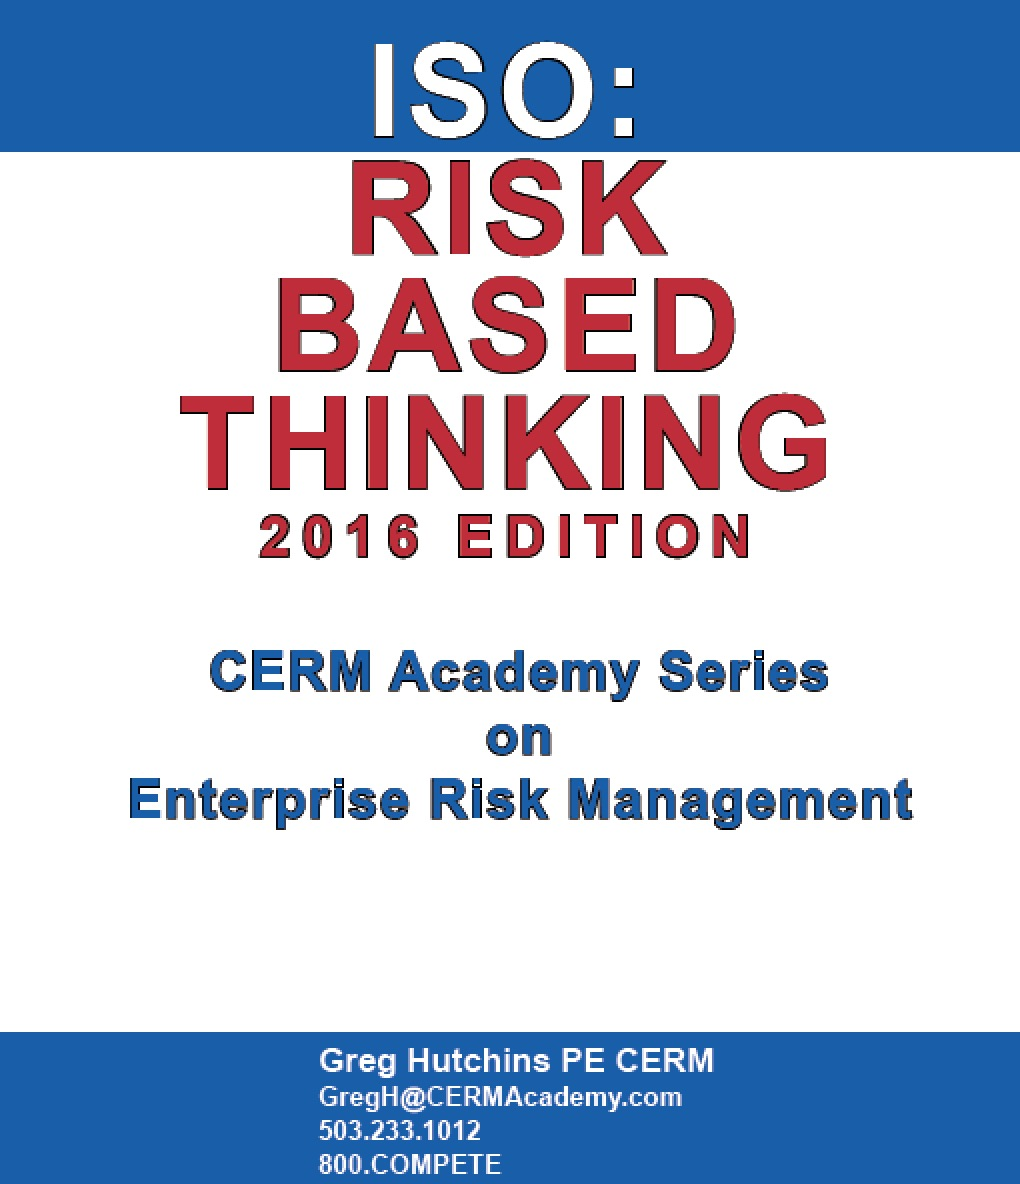 risk management principles and practices Coso issued a supplement with detailed examples for applying principles from the erm framework to day-to-day practices this supplement, titled coso enterprise risk management - integrating with strategy and performance: compendium of examples, was developed from industry practices identified through extensive research conducted when updating.